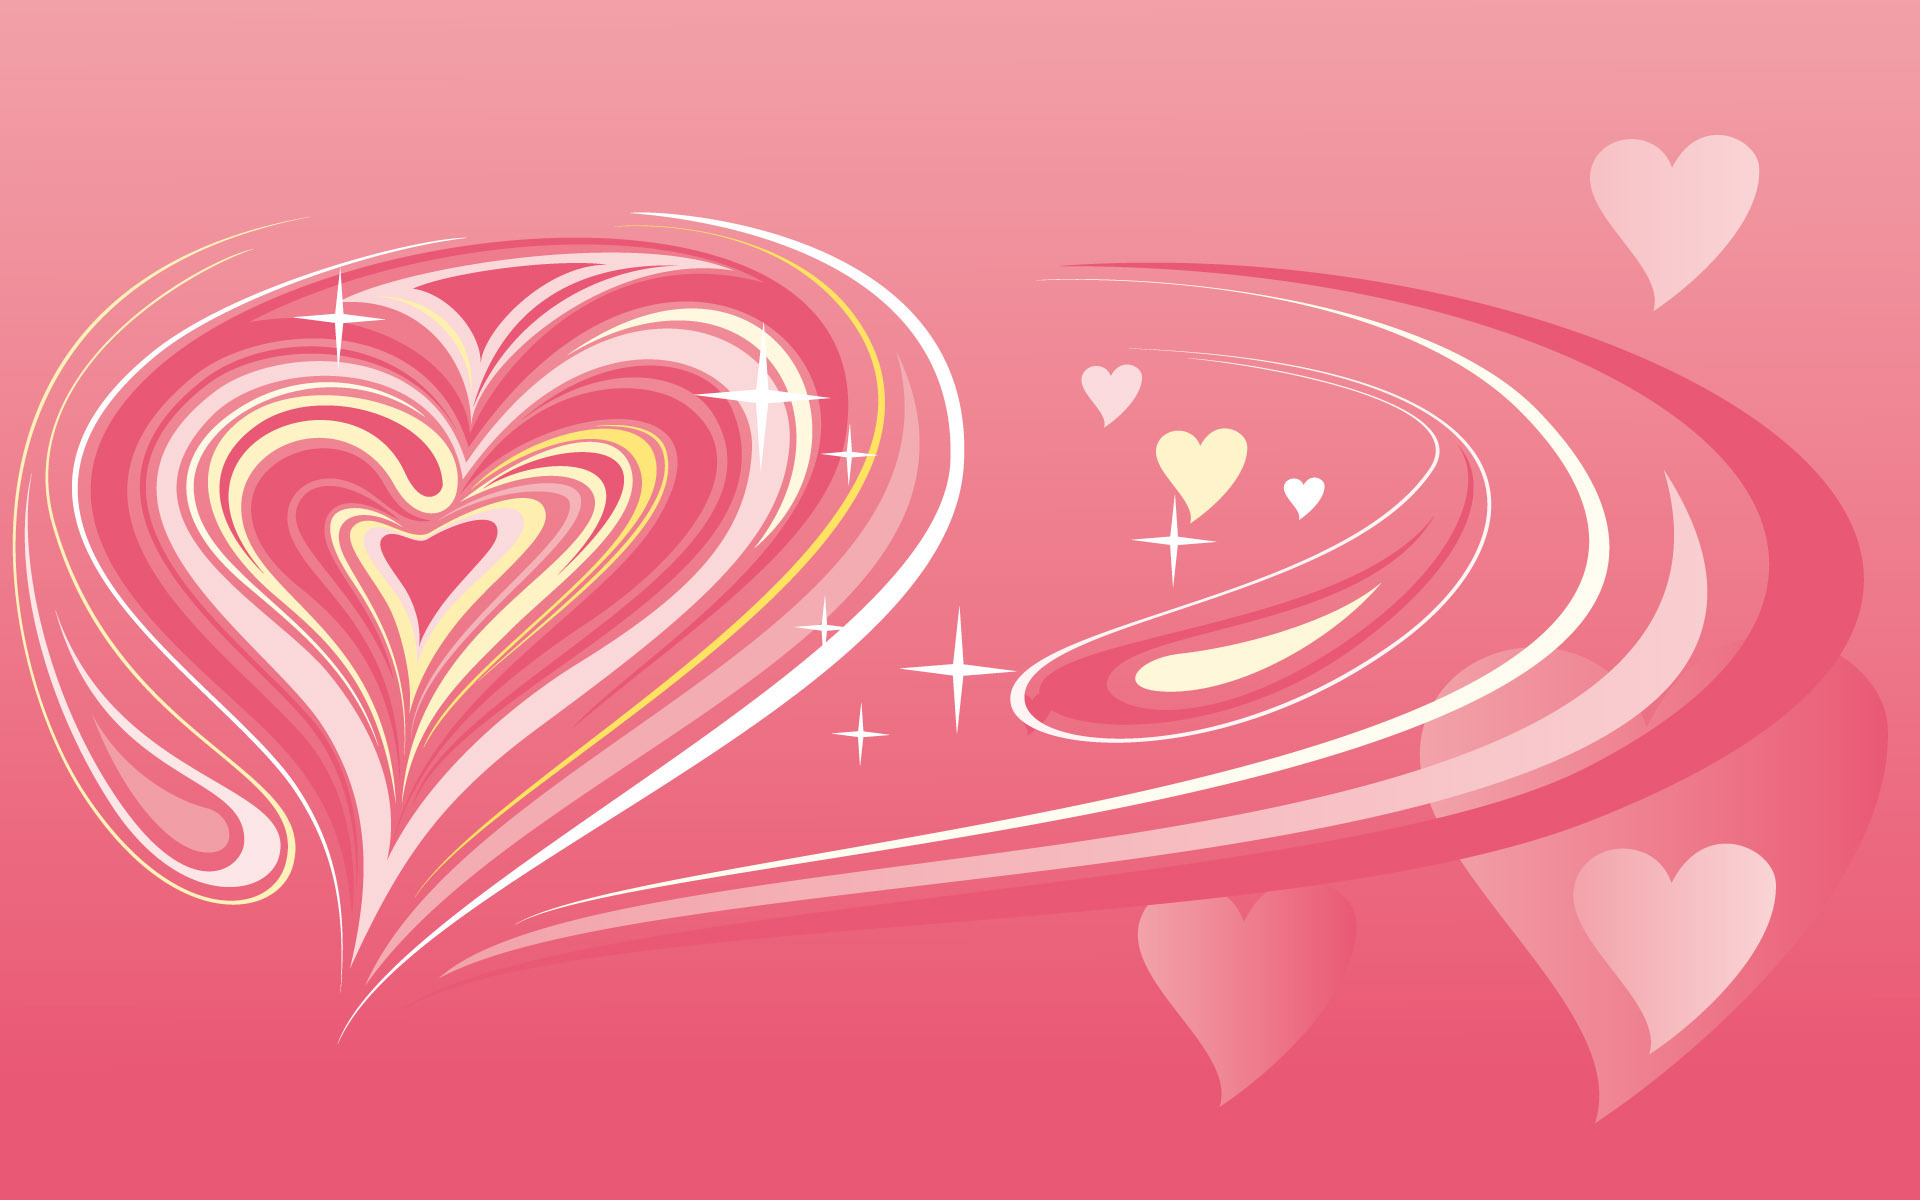 Love Wallpaper With Image : Love Wallpaper - Love Wallpaper (4187726) - Fanpop